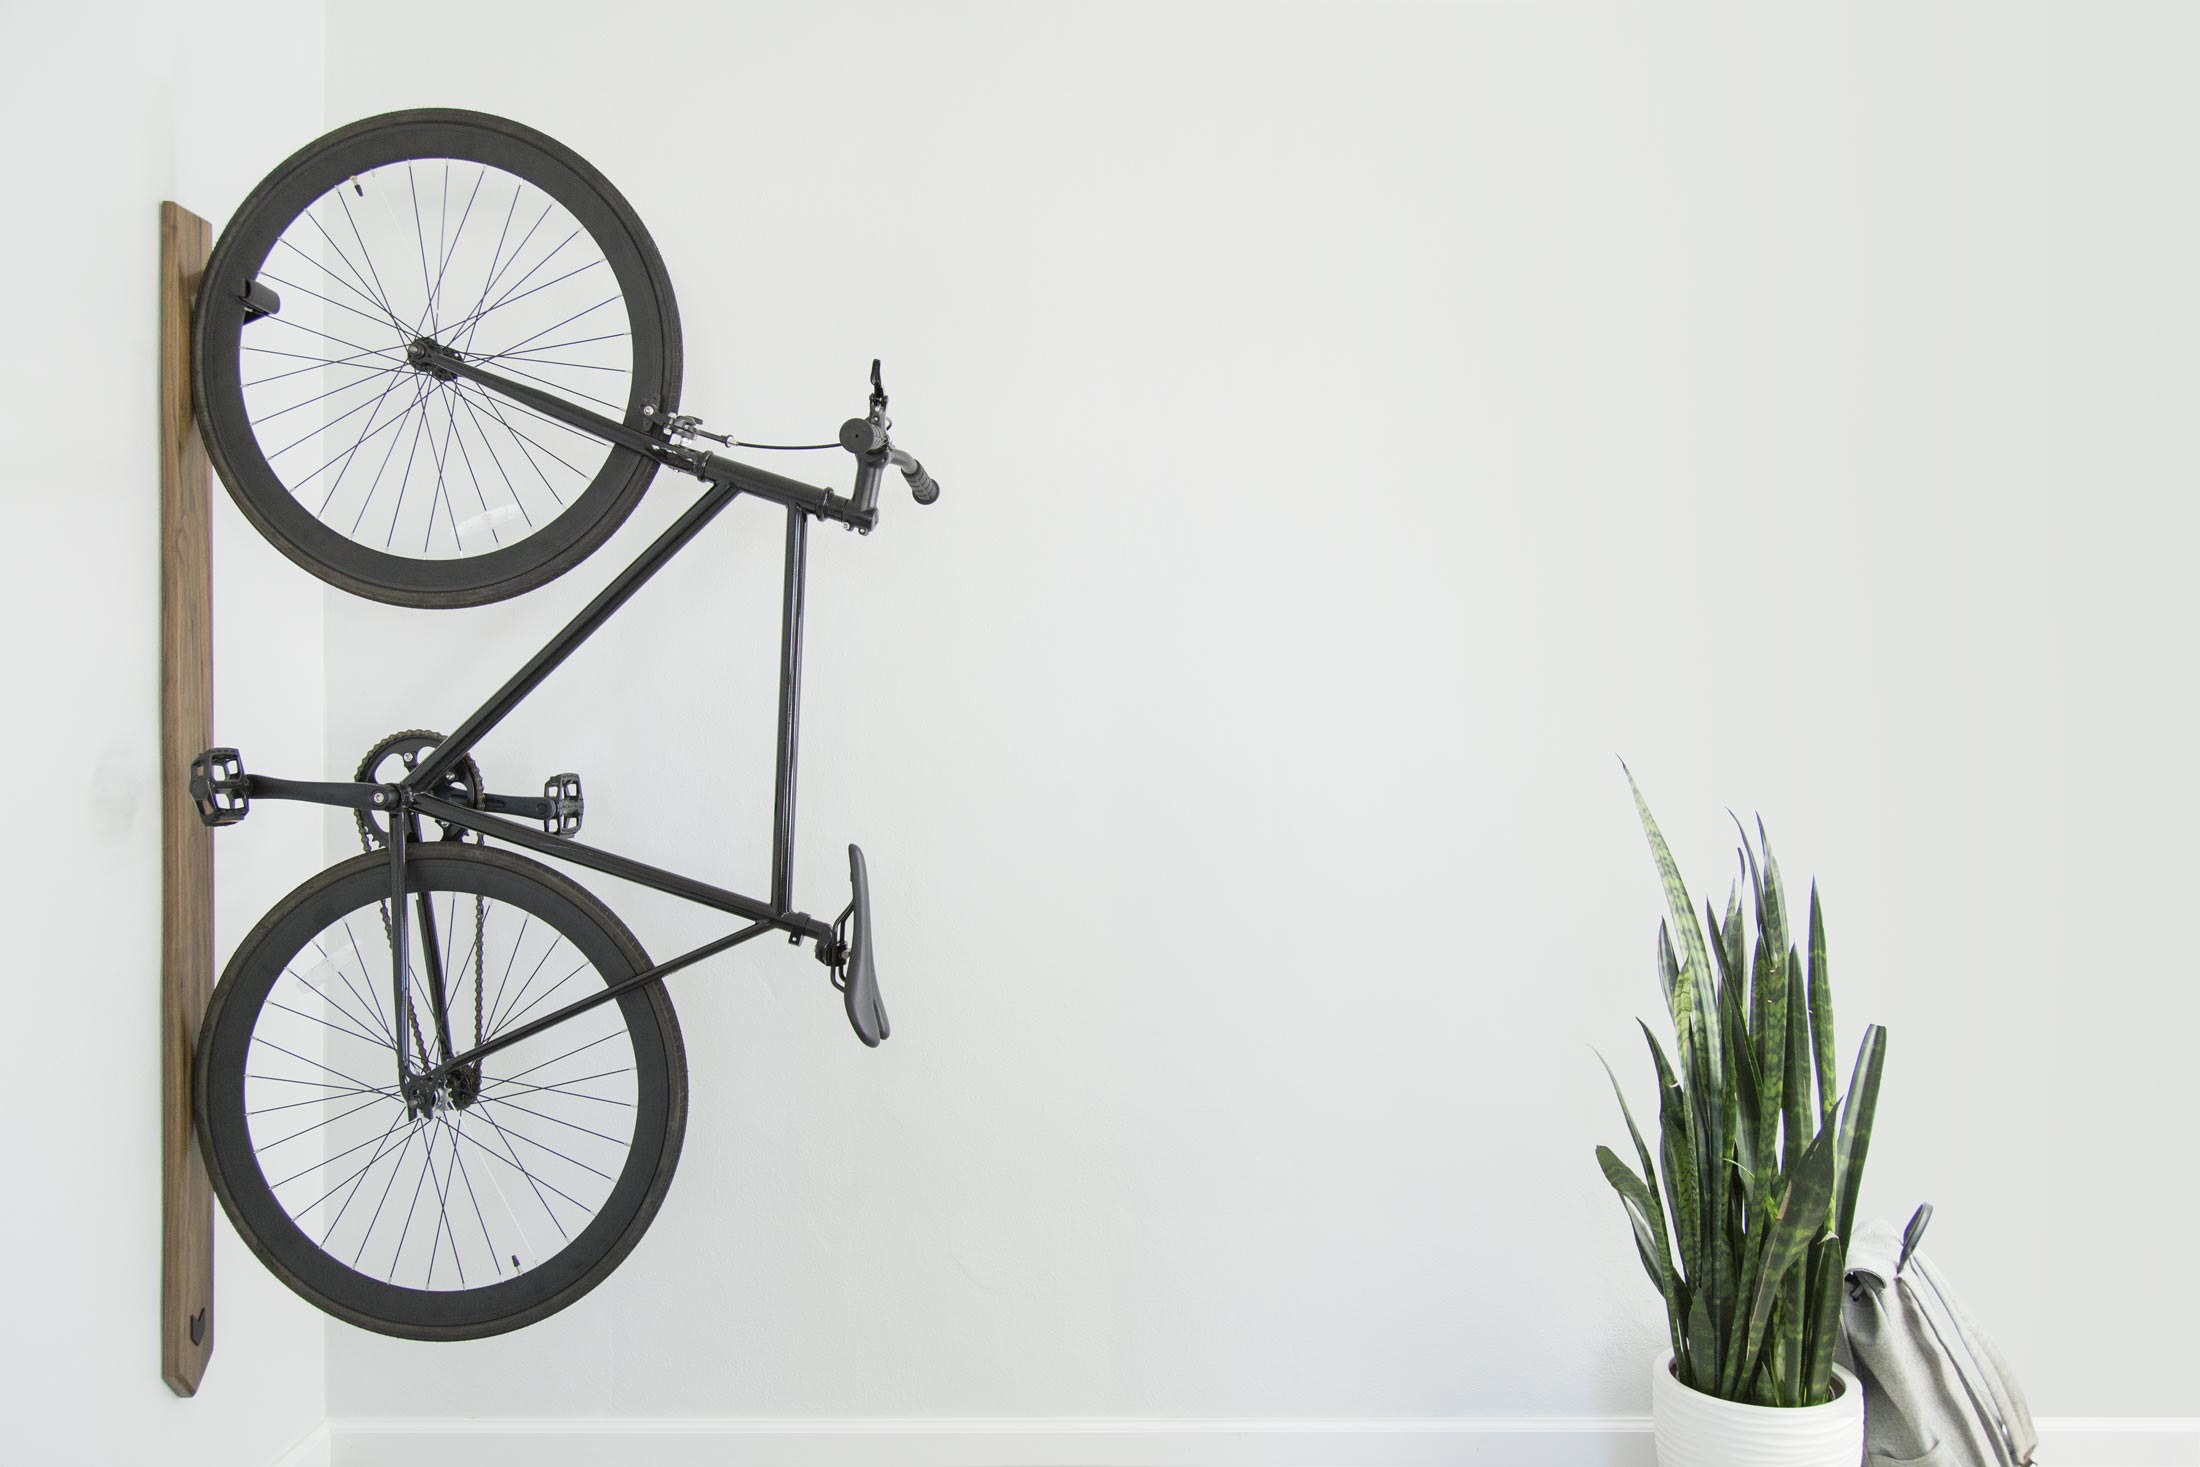 An Artifox Black Walnut Rack is mounted to a white wall in a tiny apartment and storing a black bike vertically.